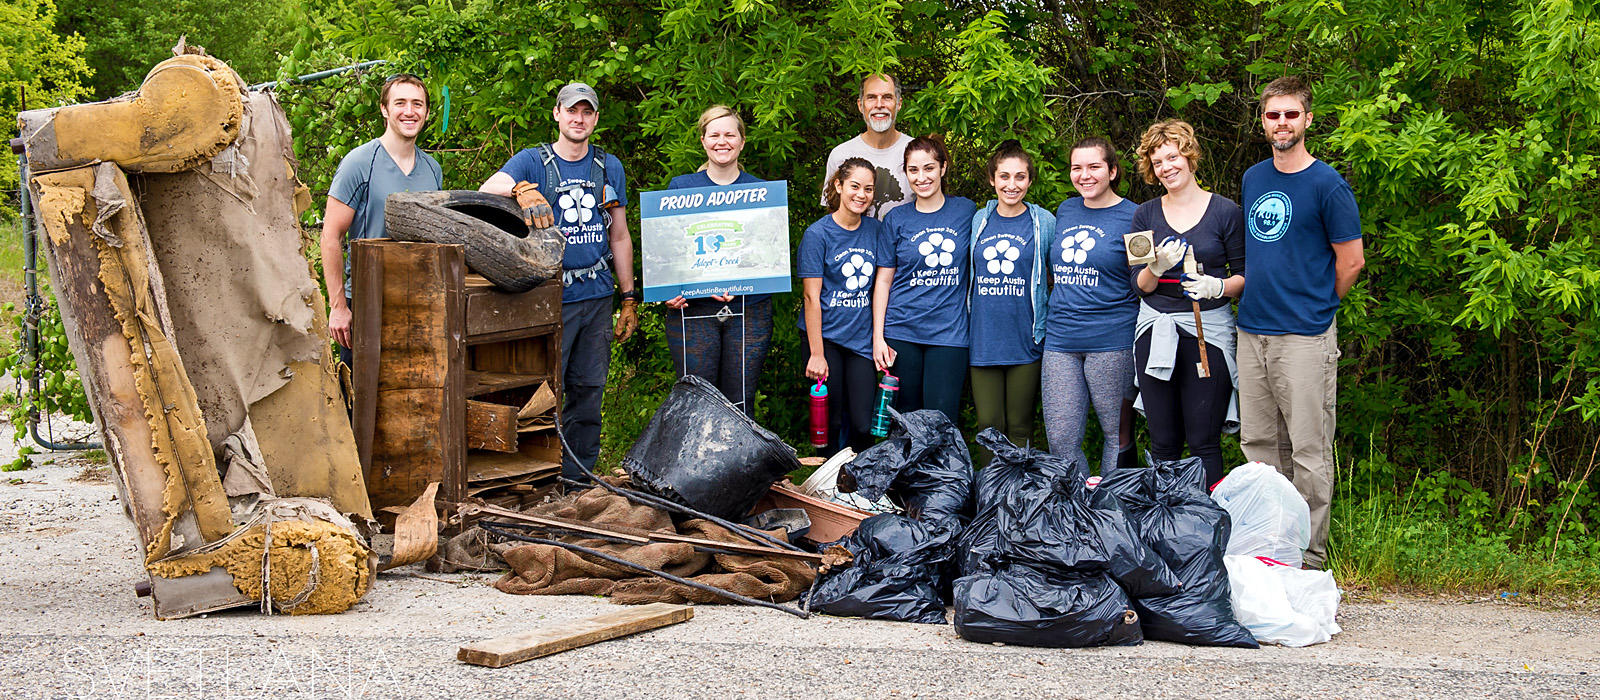 Keep America Beautiful Announces Postponement of Annual Great American Cleanup Campaign